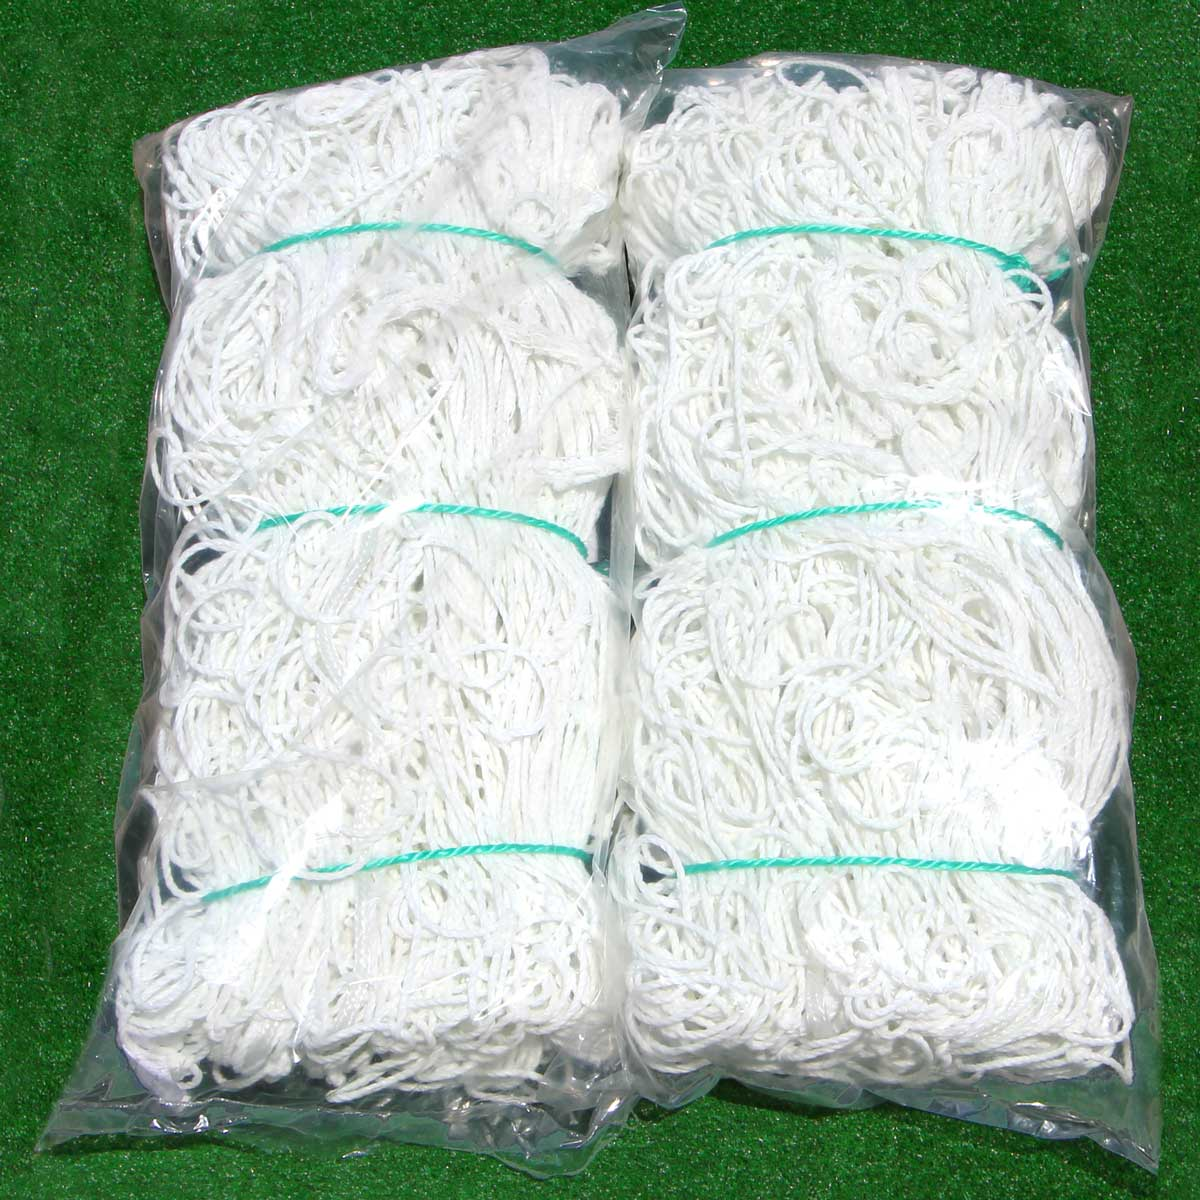 Packaging or Promotional image for Cimarron 4mm Soccer Net